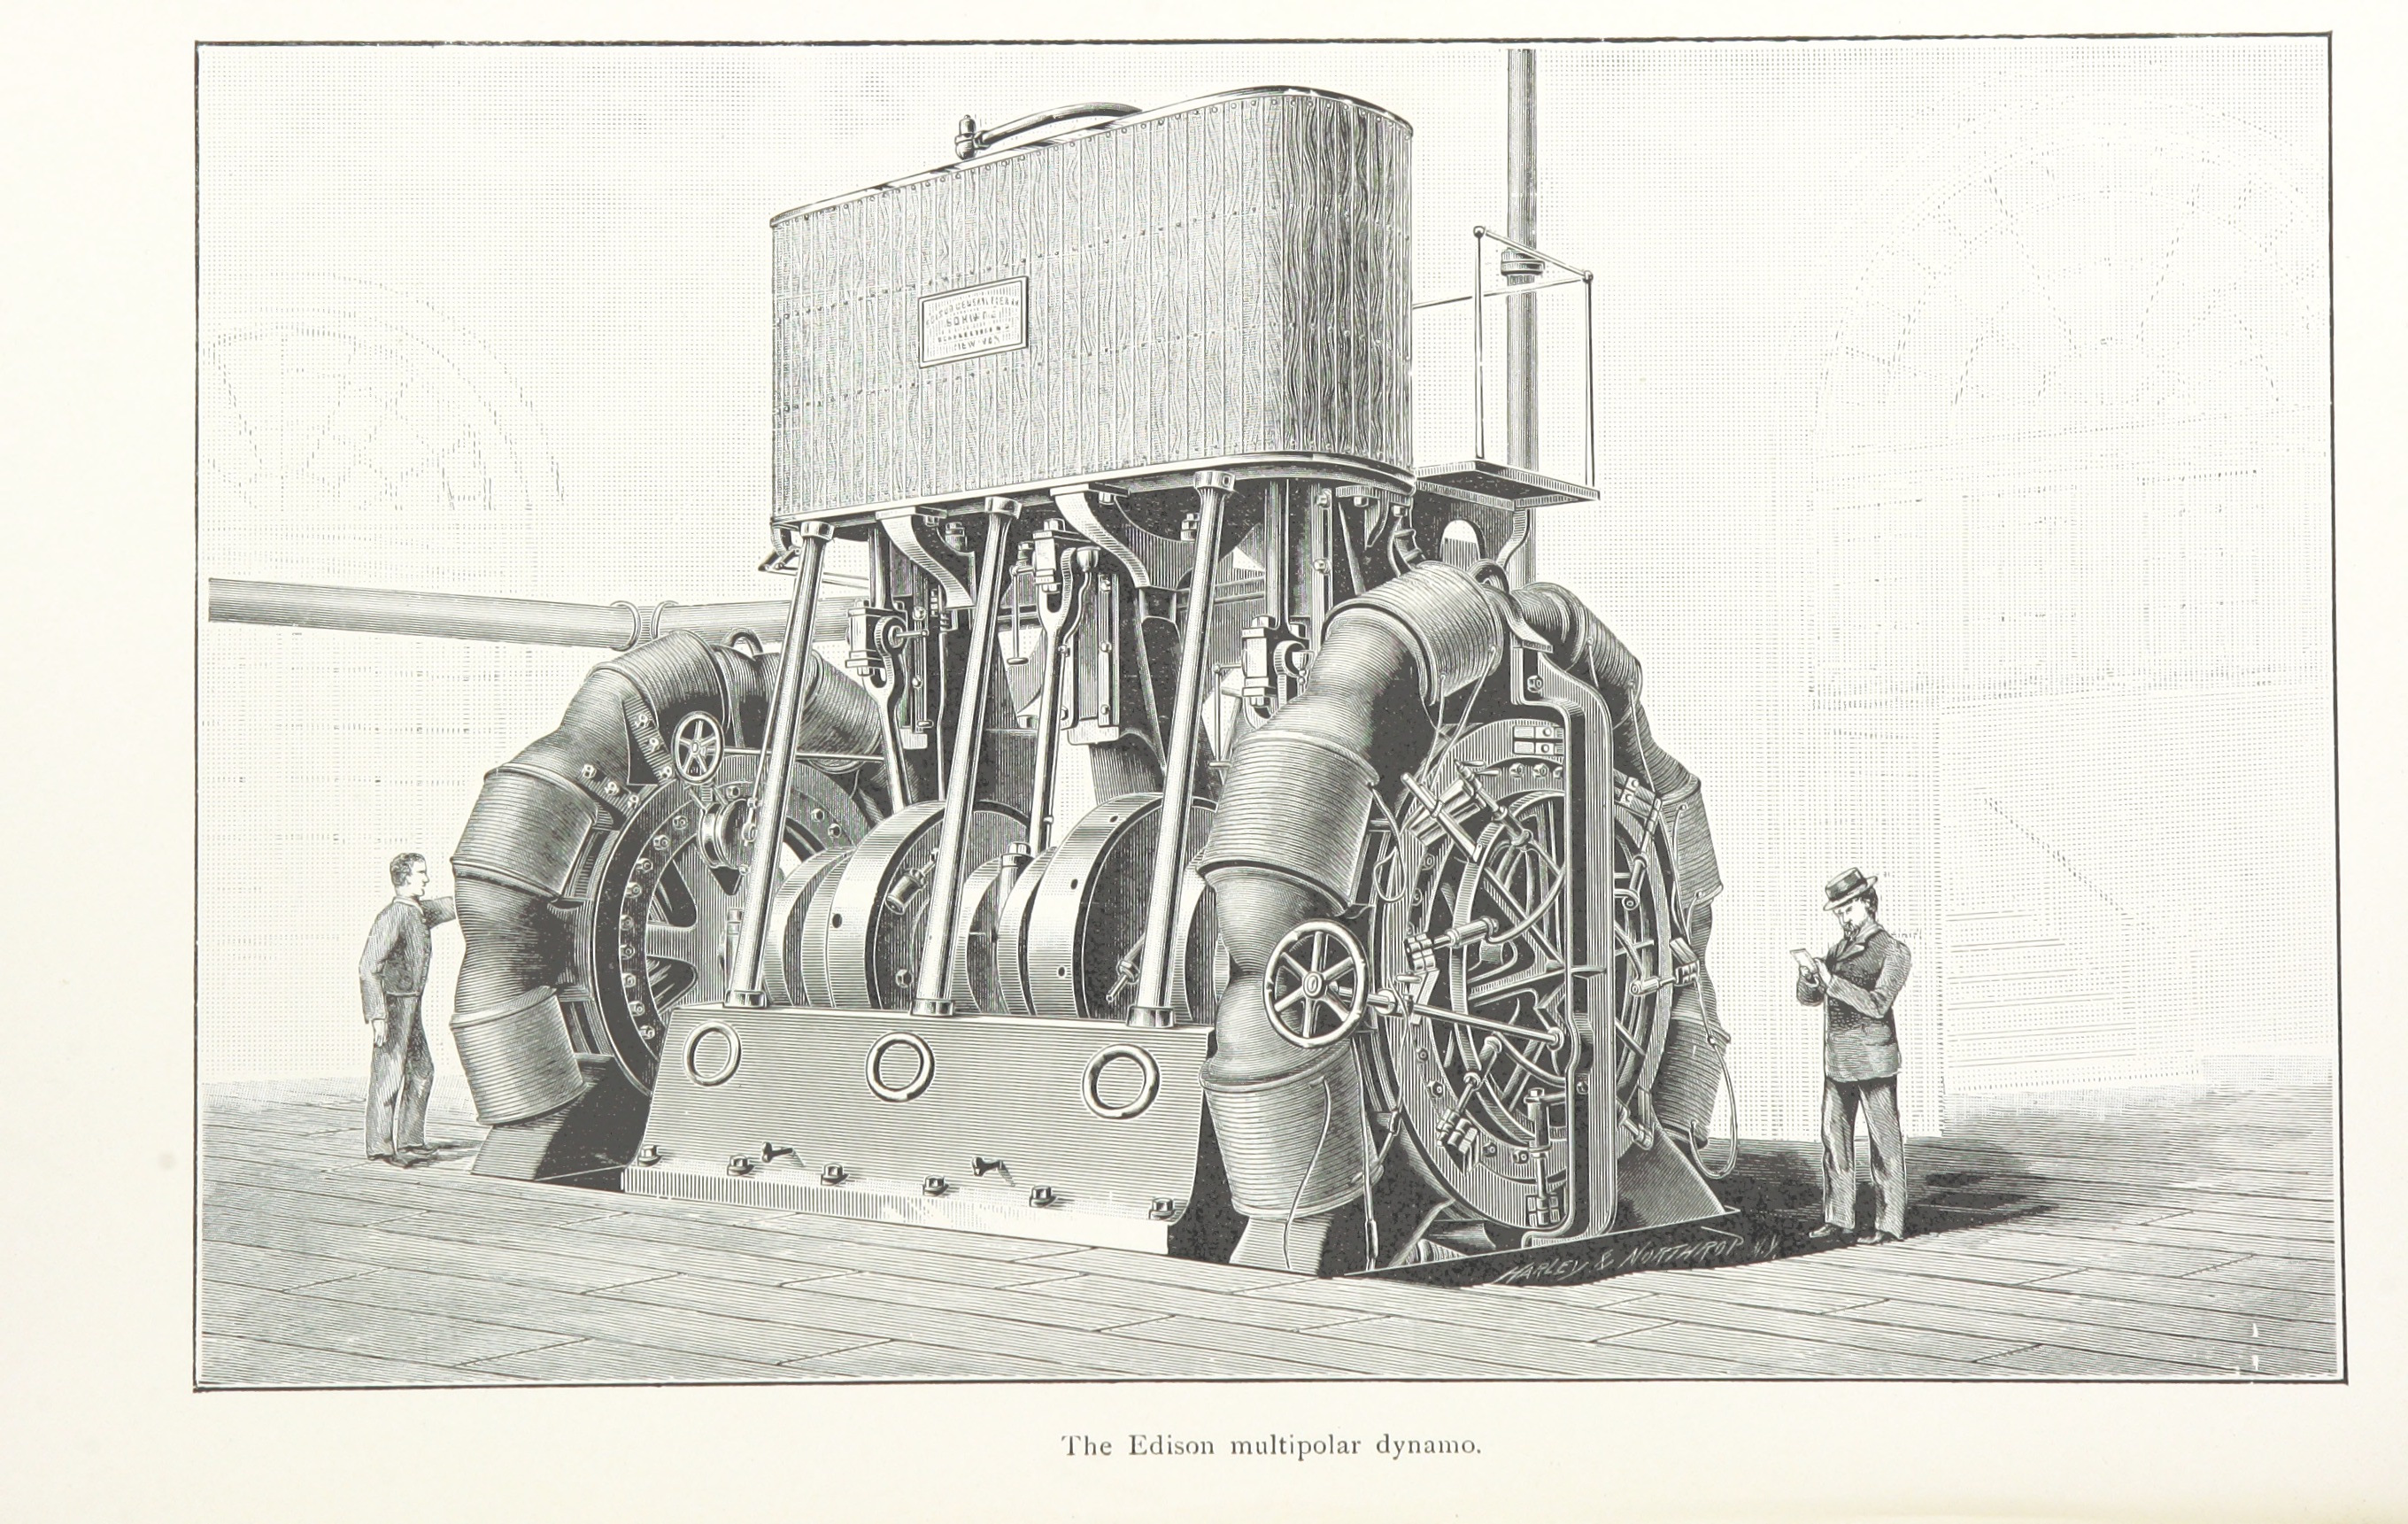 The Edison Multipolar Dynamo, from The United States of America. A study of the American Commonwealth, its natural resources, people, industries, manufactures, commerce, and its work in literature, science, education and self-government.